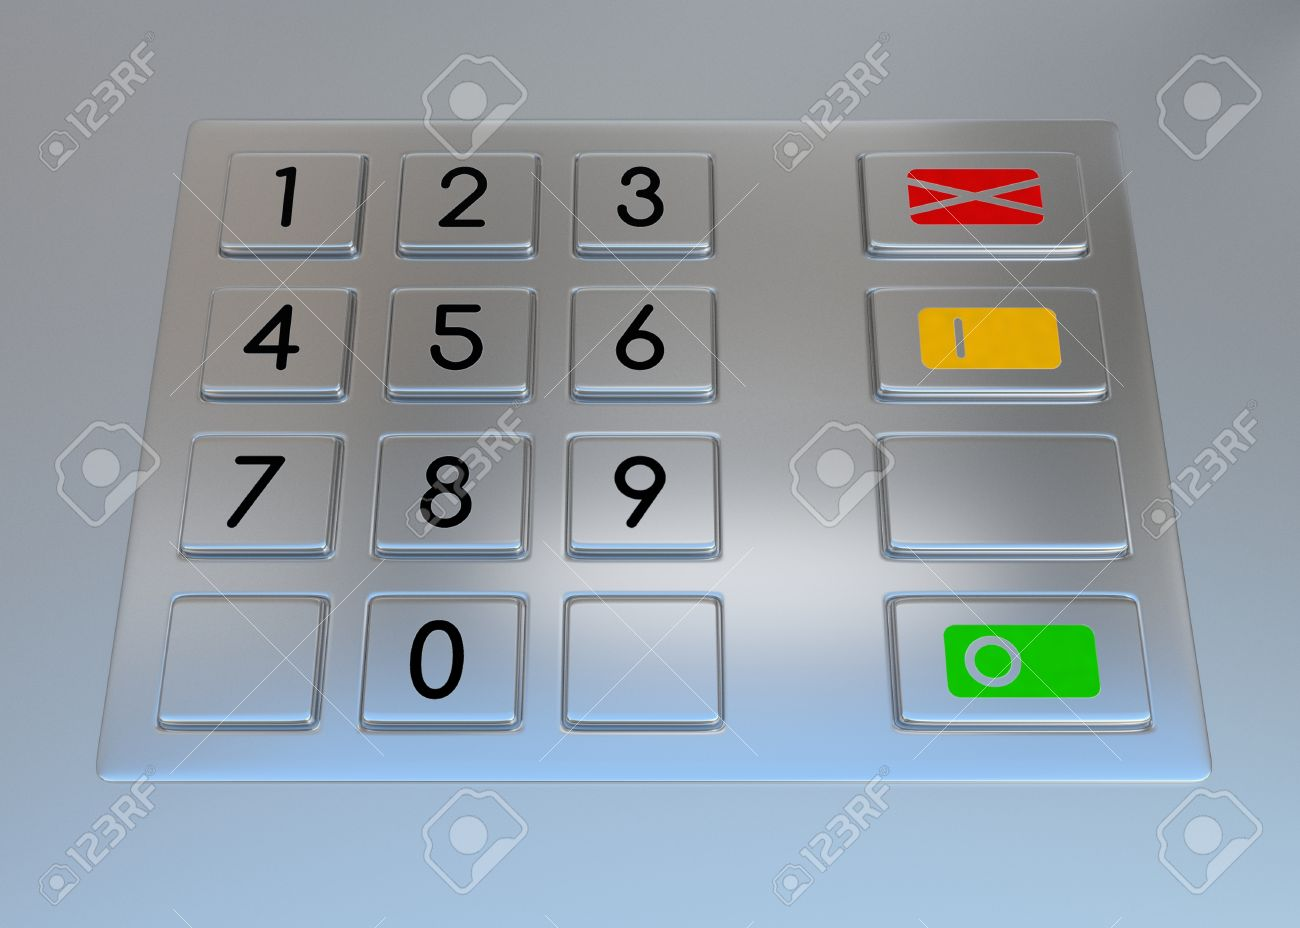 Atm machine keypad  Numbers buttons with additional red, yellow